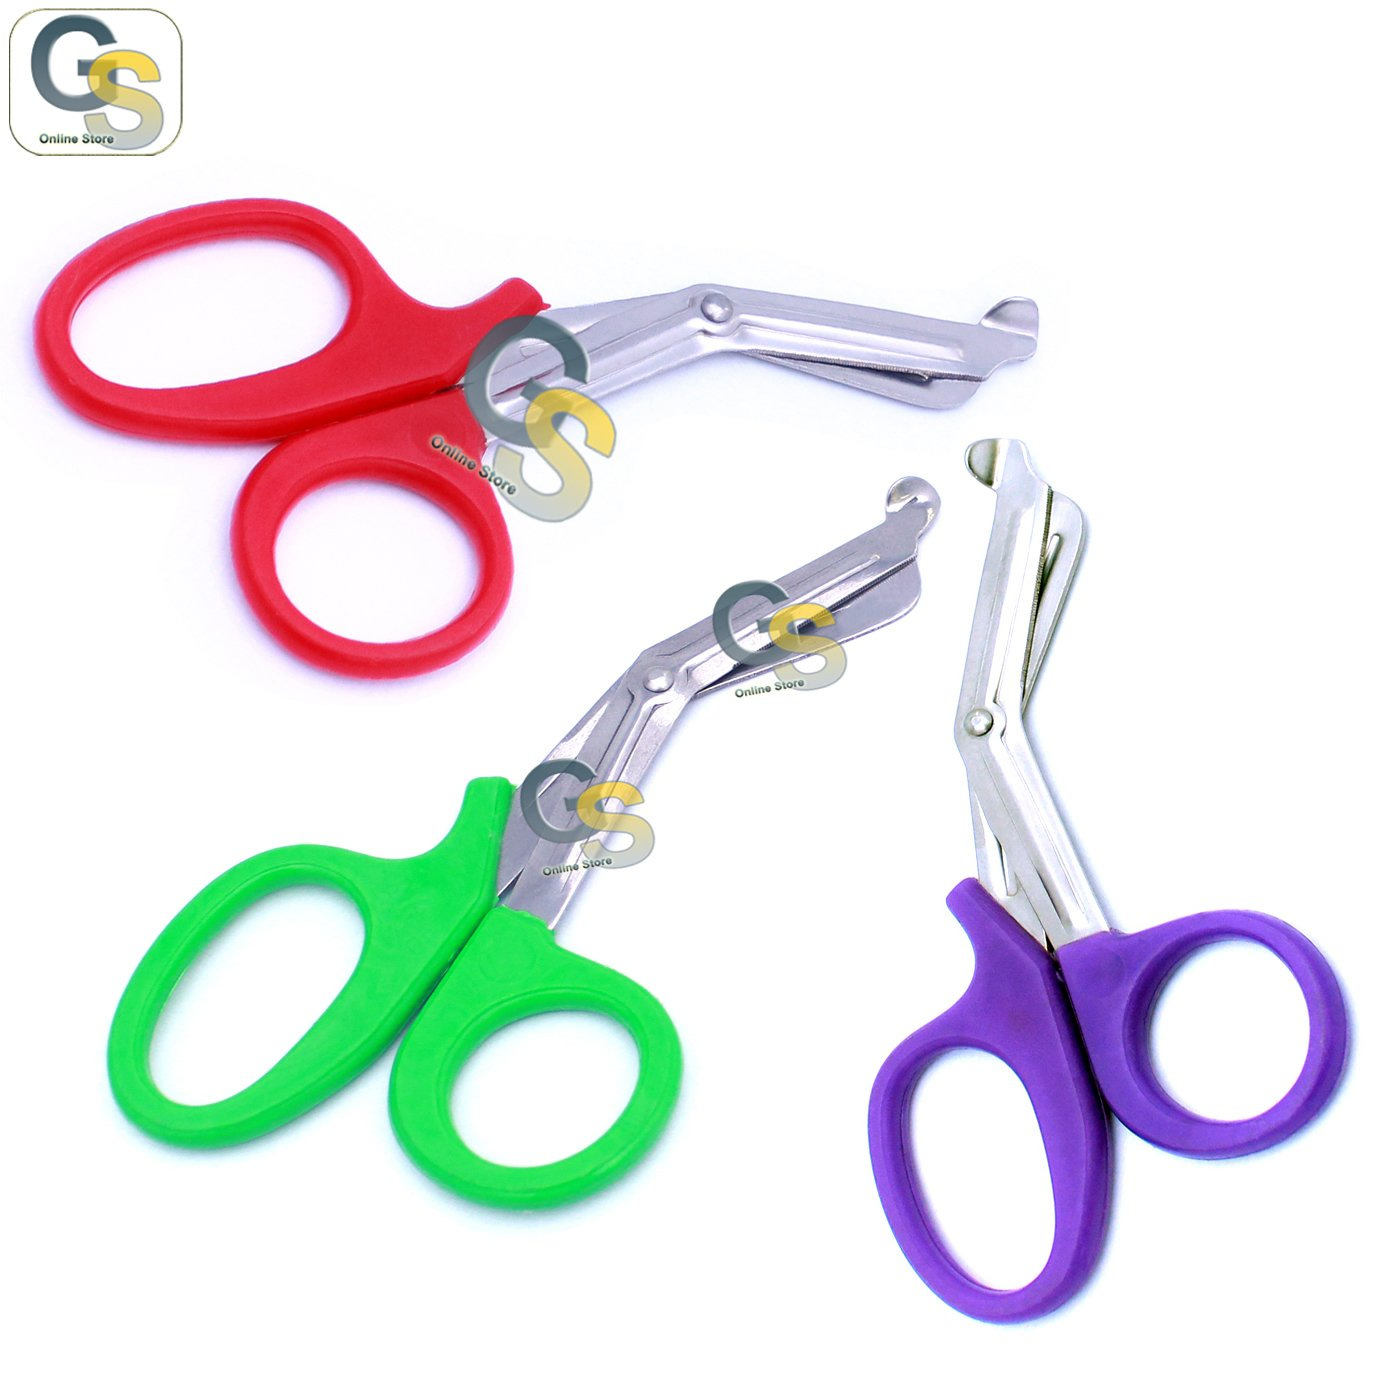 G.S 3 PCS (RED & GREEN & PURPLE) PARAMEDIC UTILITY BANDAGE TRAUMA EMT EMS SHEARS SCISSORS 7.25 INCH STAINLESS STEEL